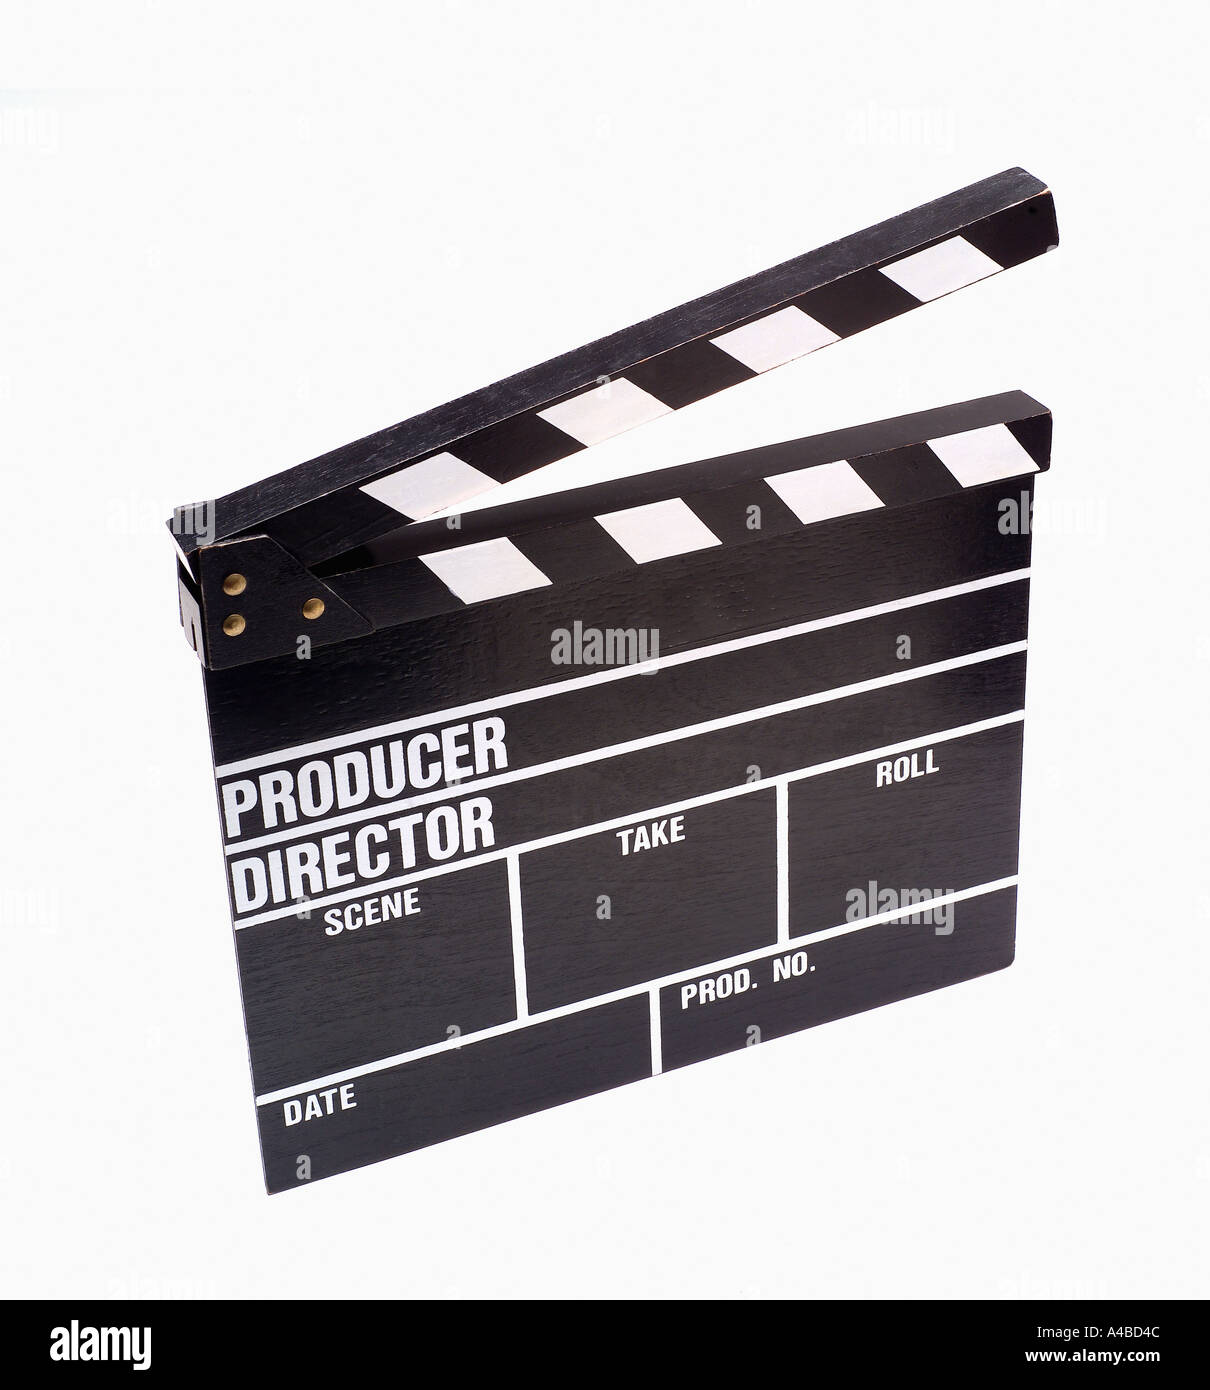 Movie production clapboard - Stock Image